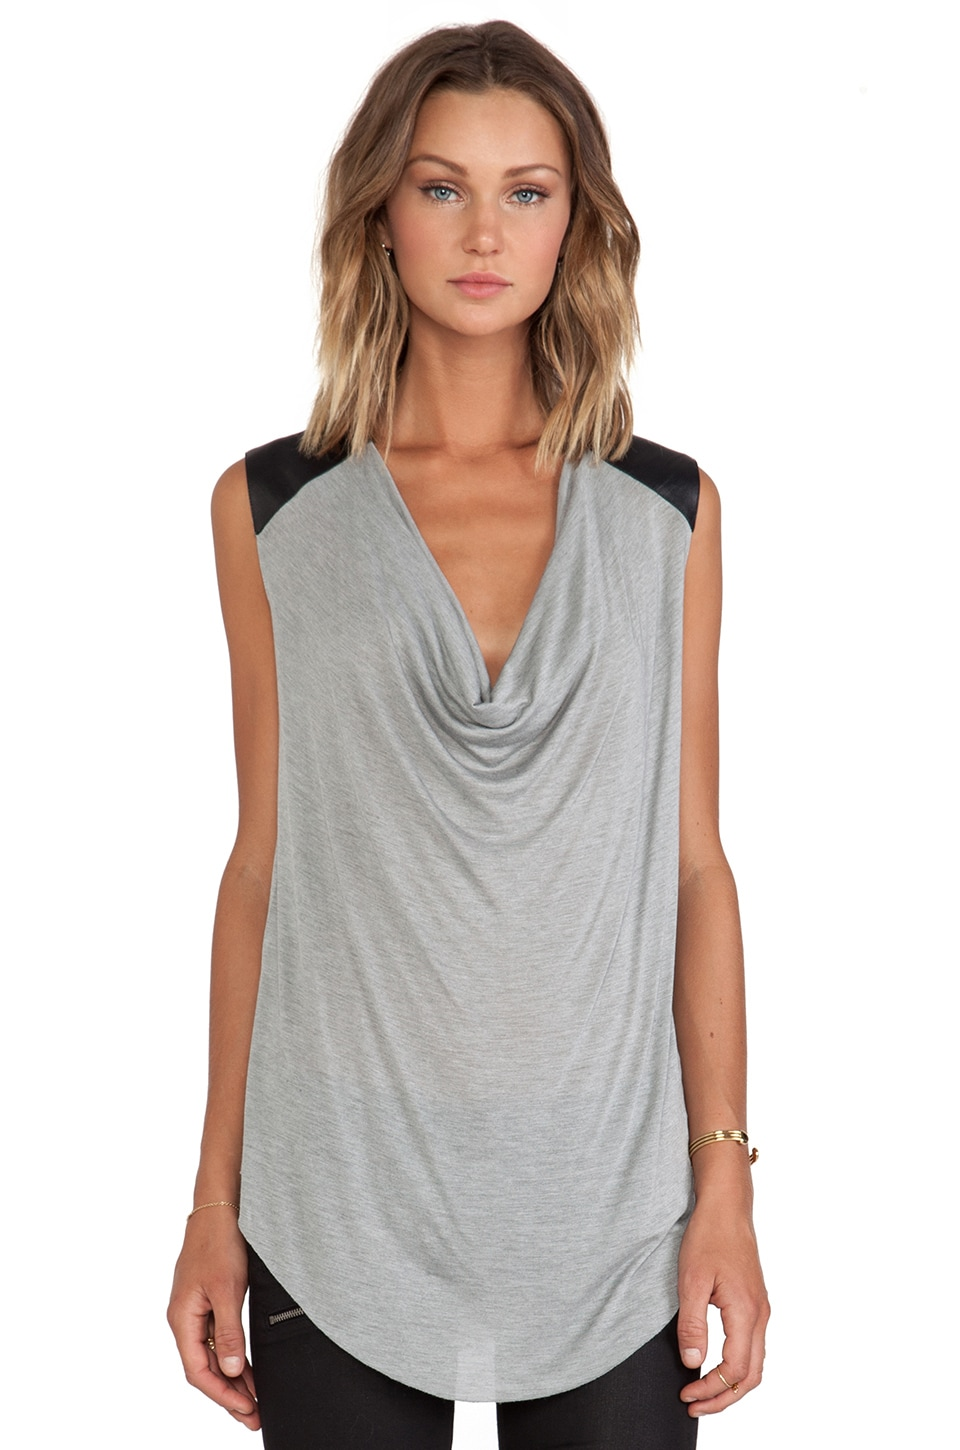 sen Dominica Top in Heather Grey & Black